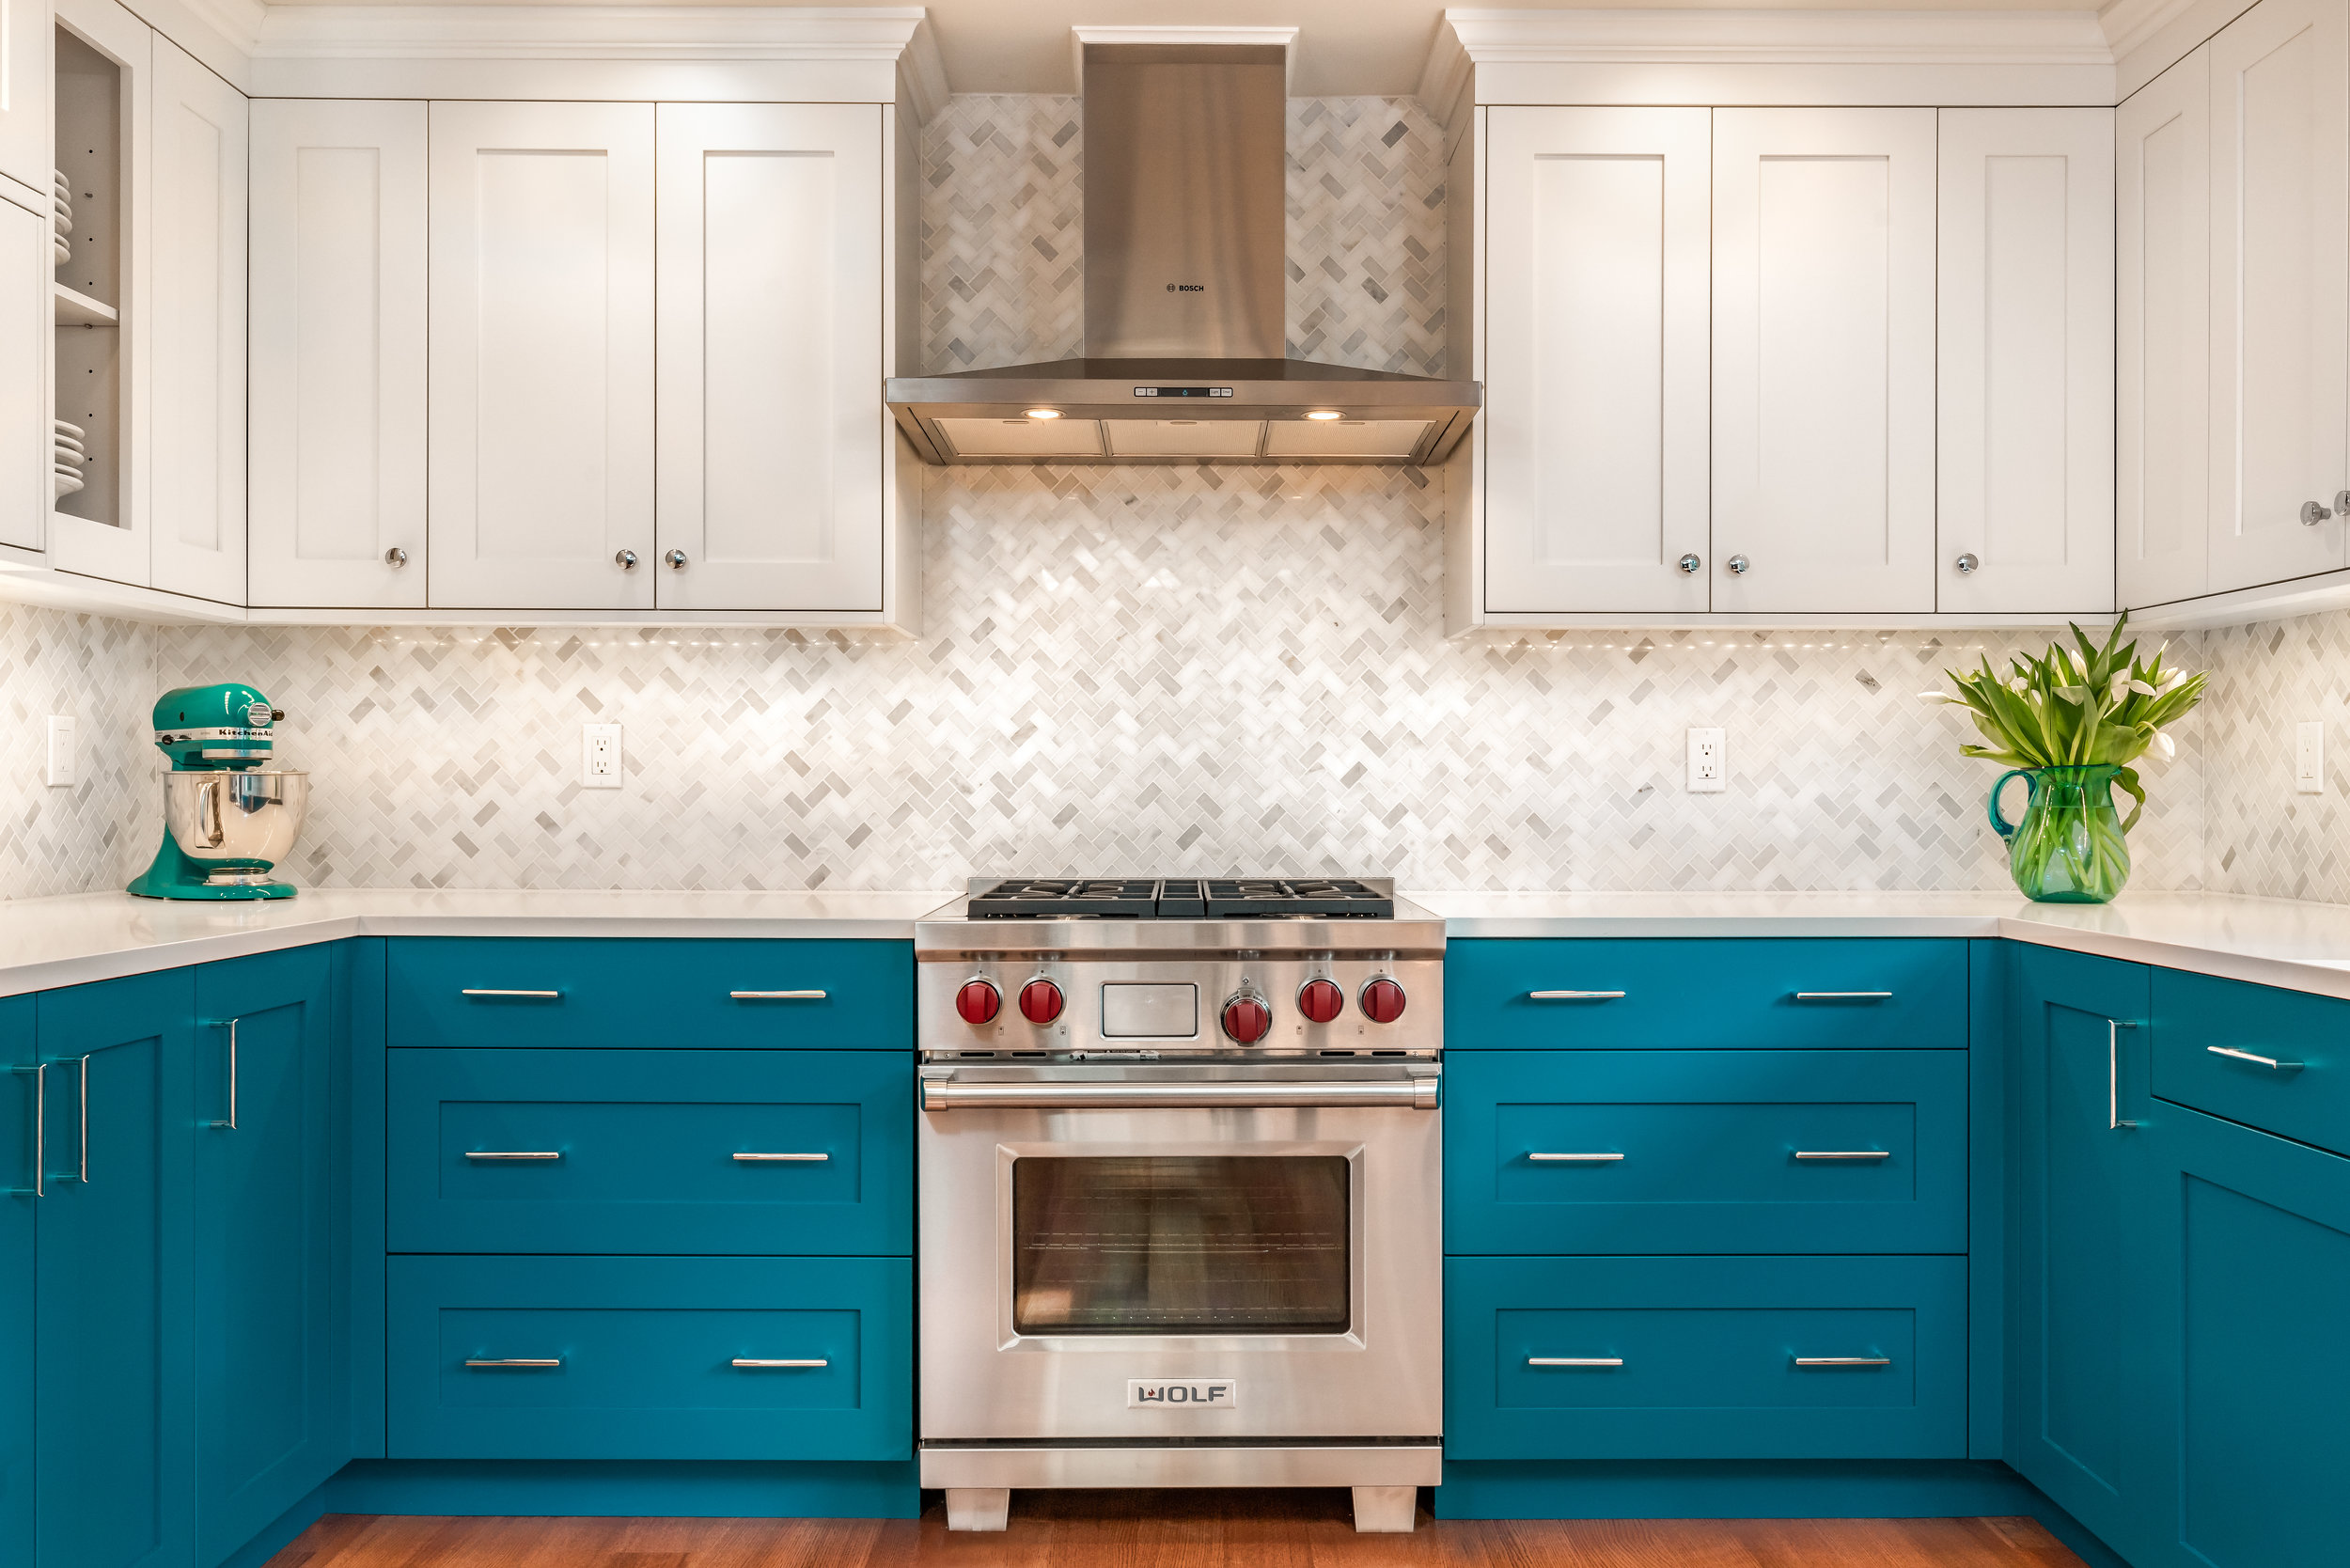 fixed-RiddleConstruction_Sulc_Kitchen_High_Res-2.jpg